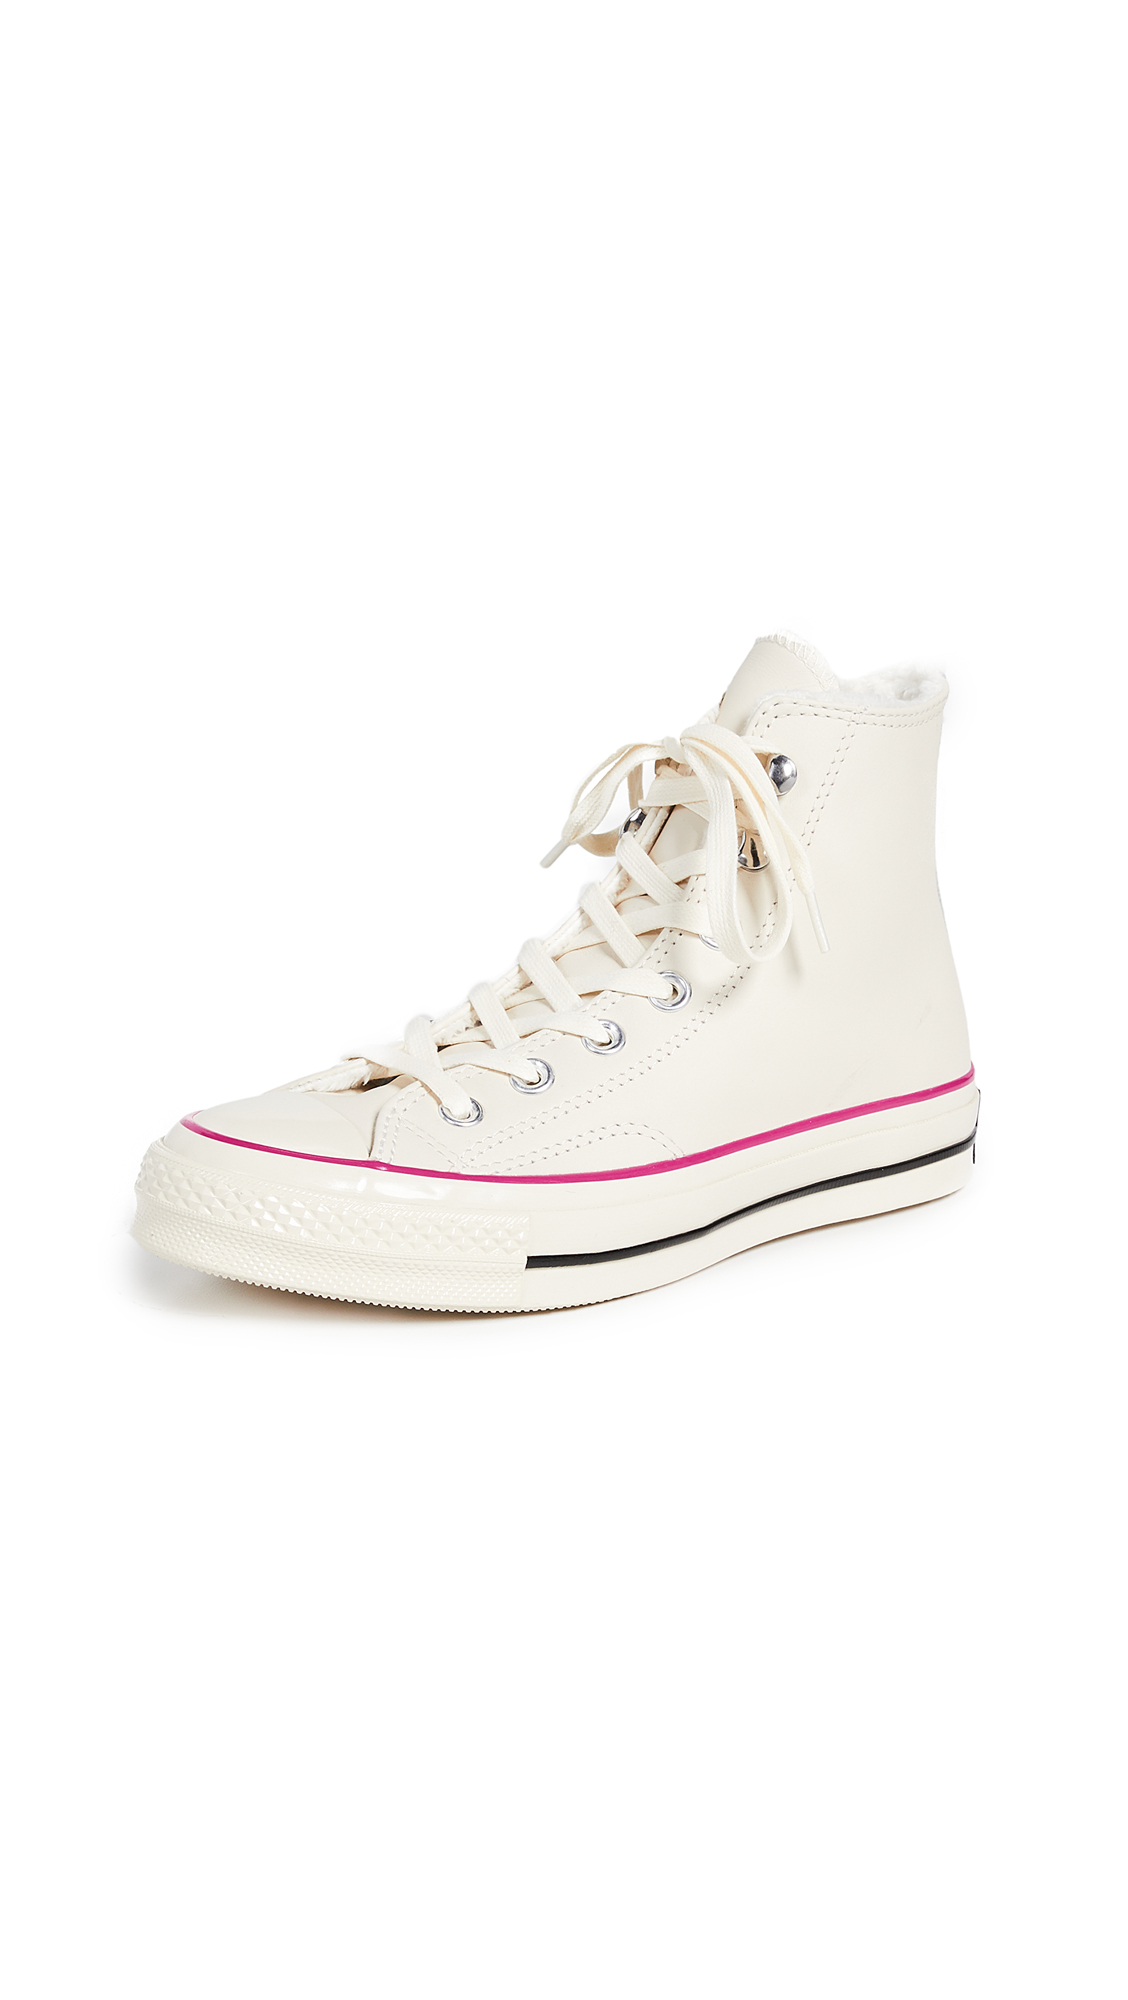 Converse Chuck 70 Leather Hi Top Sneakers